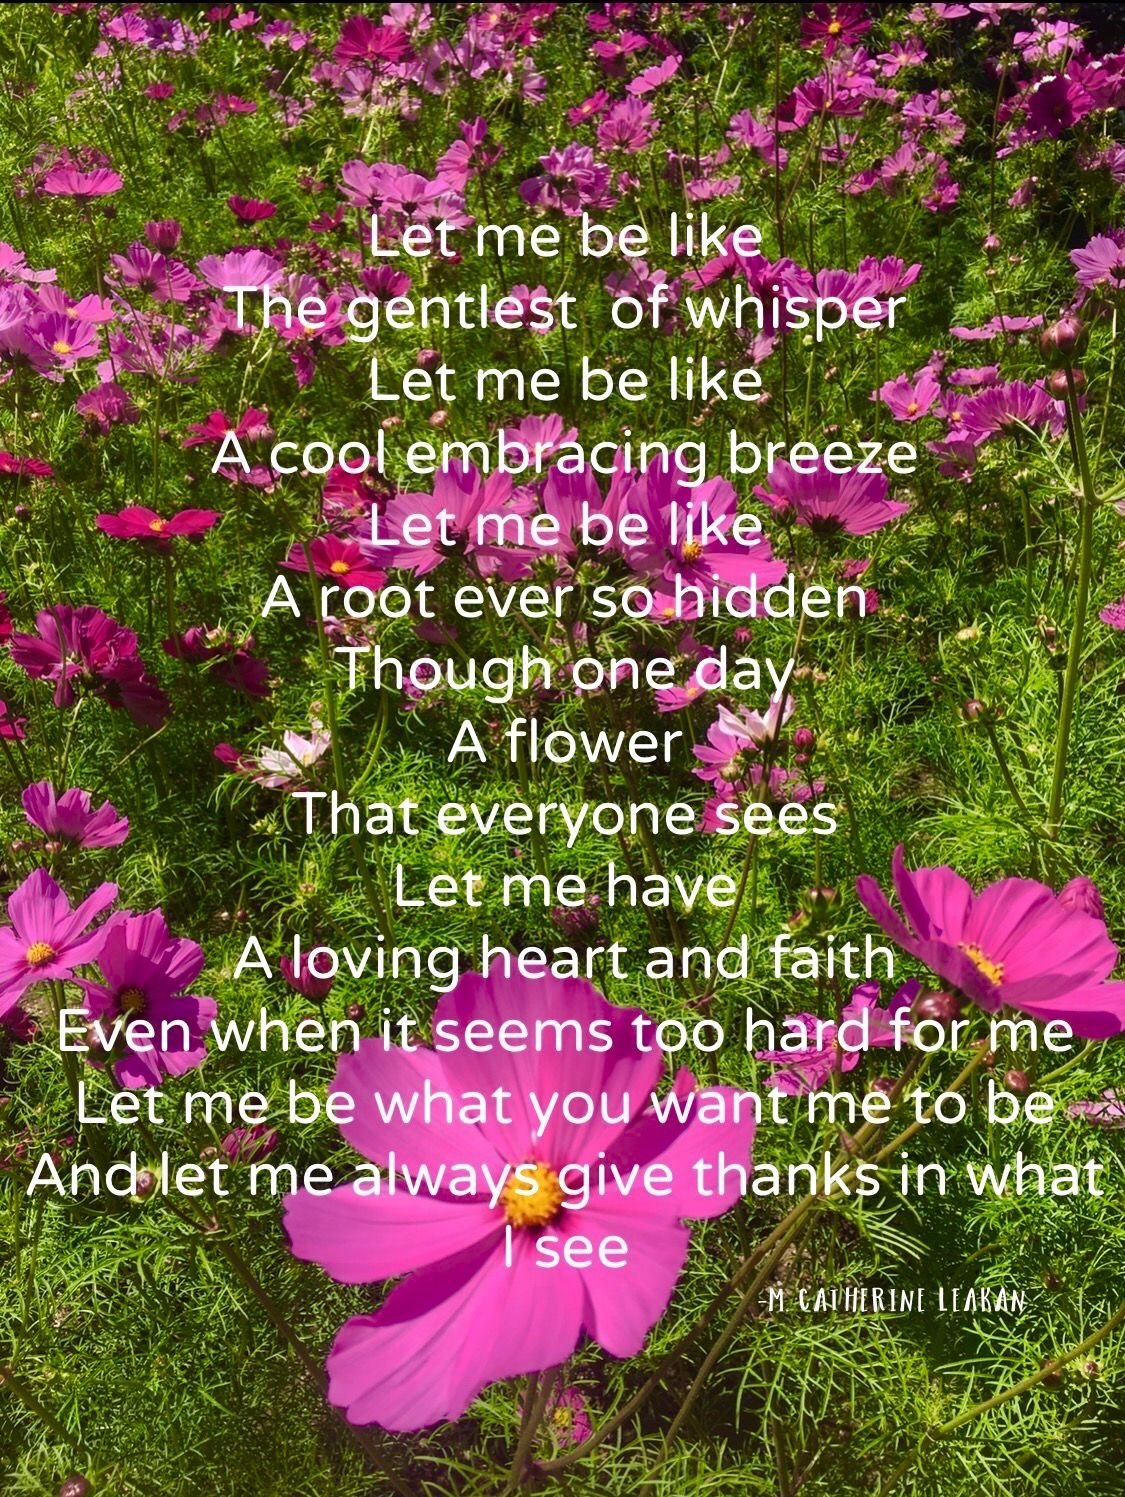 Letitbe Spiritual Poetry For Sunday Peace